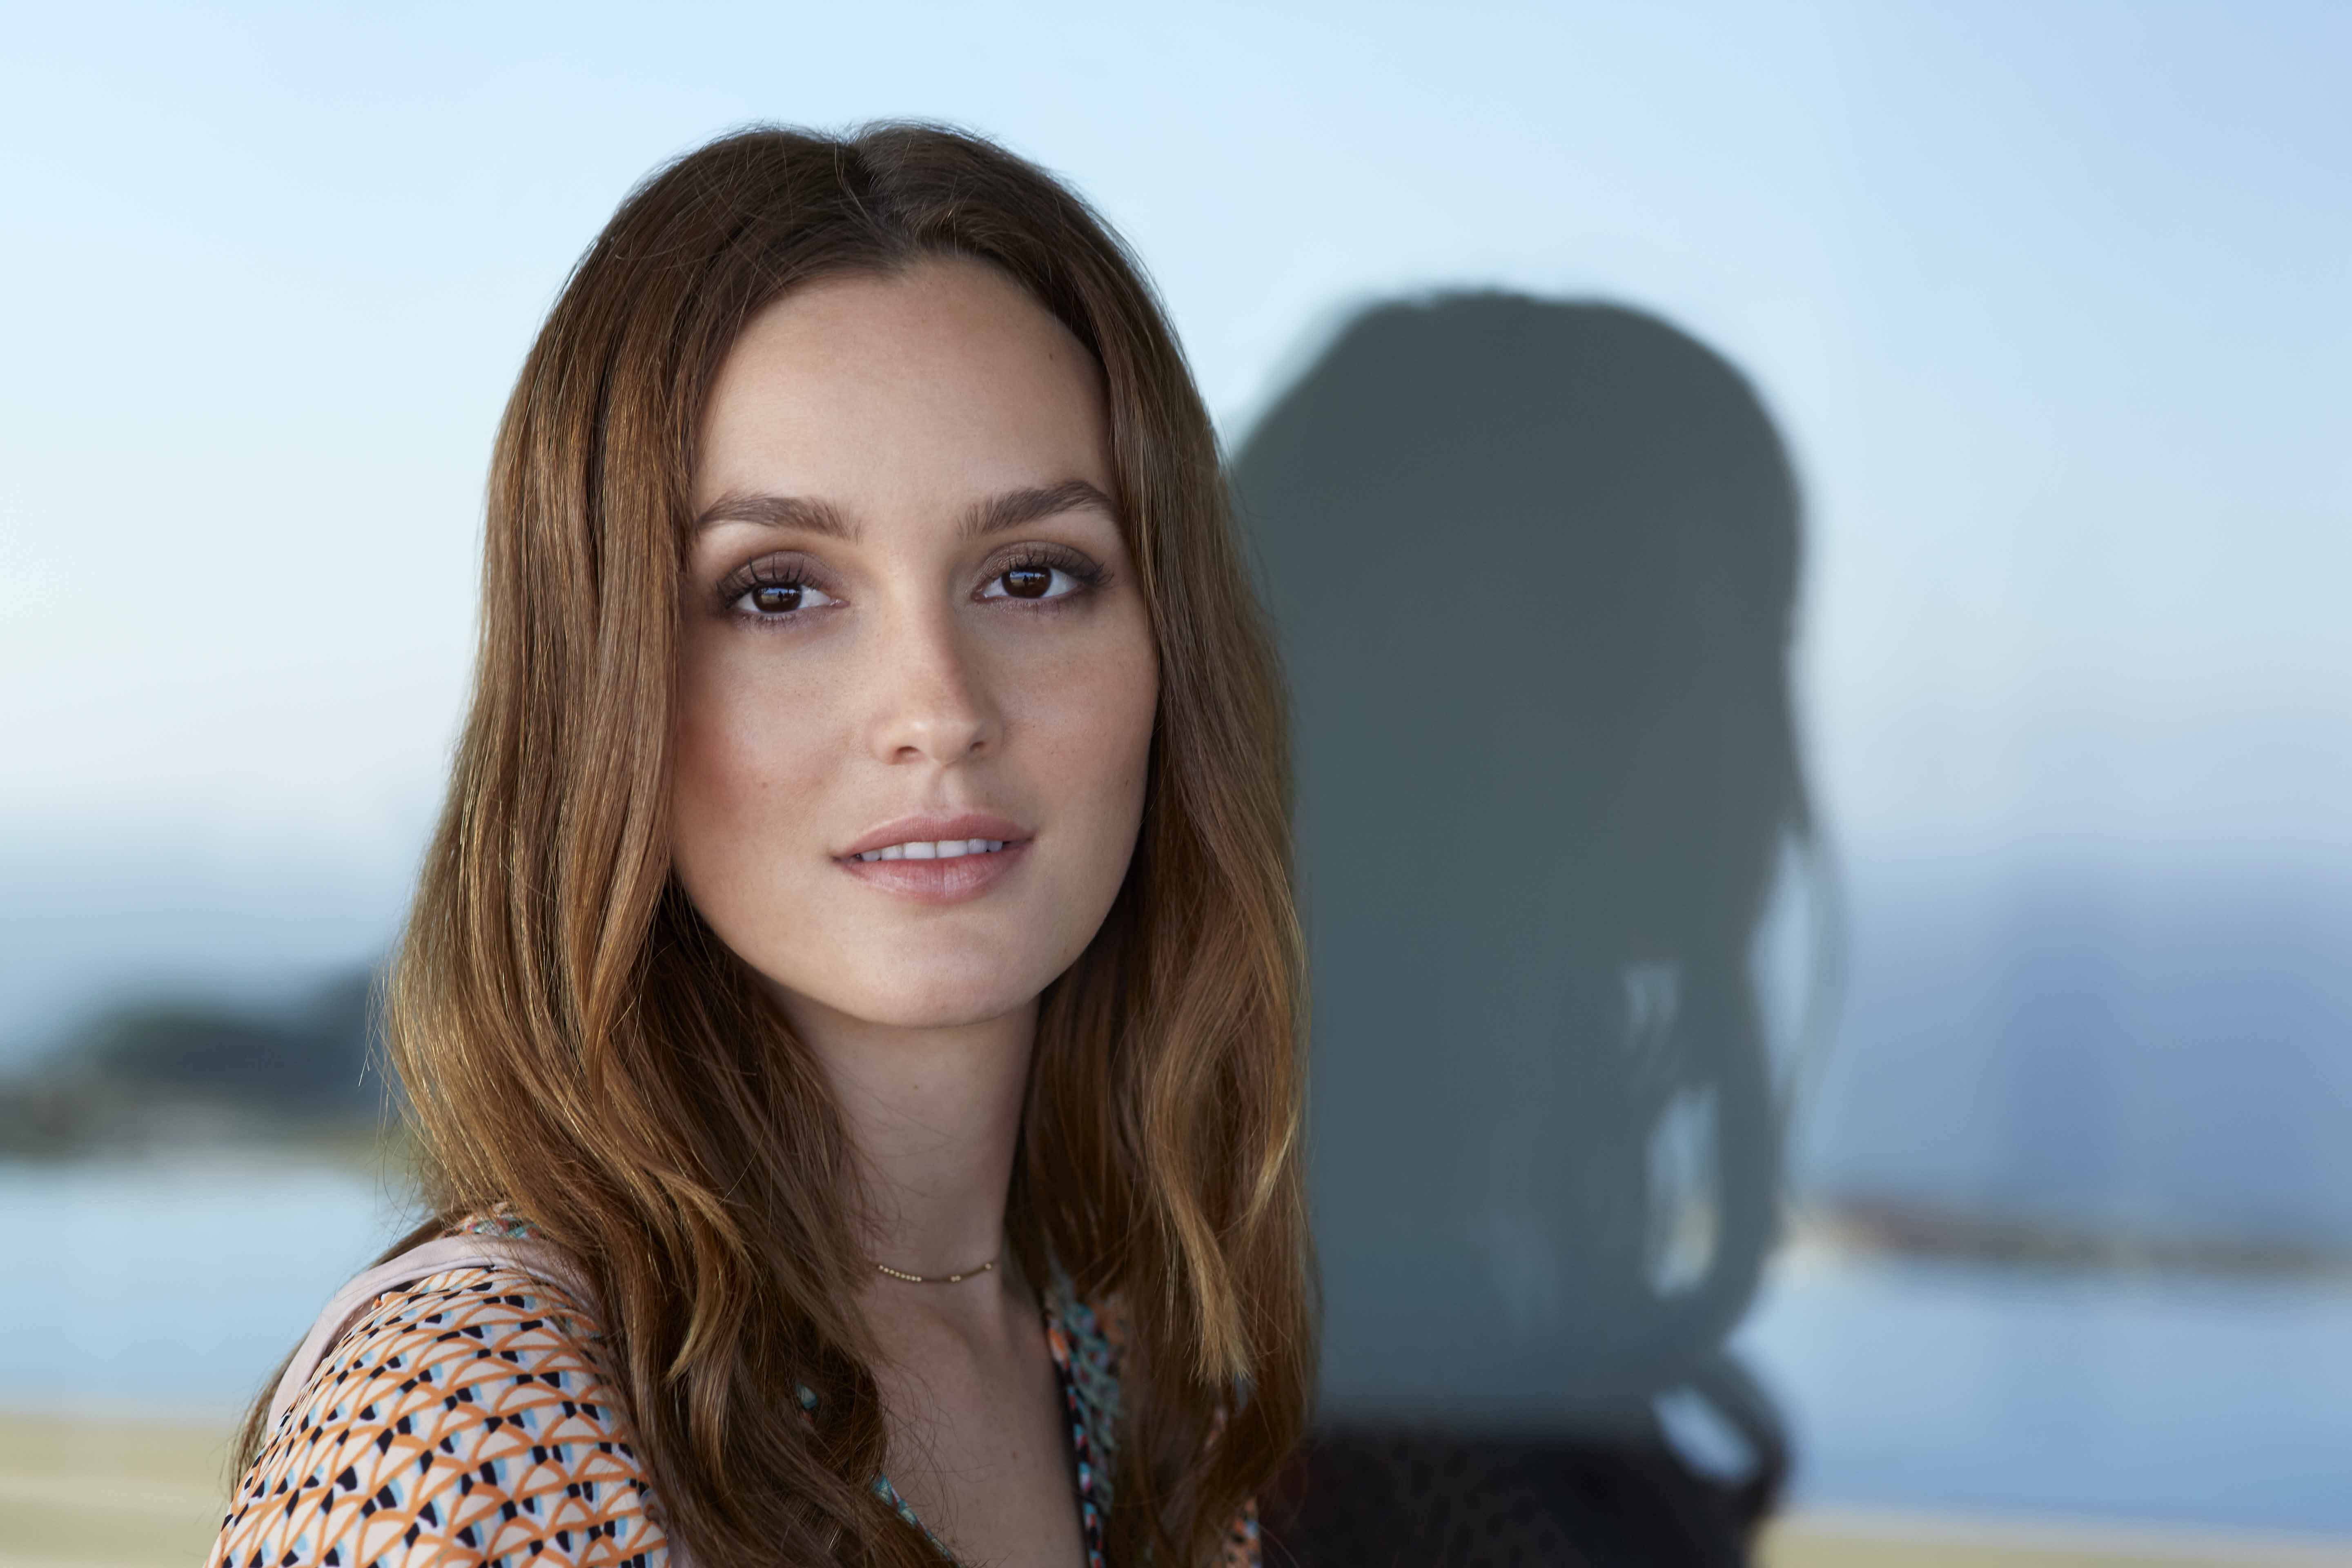 Leighton Meester 2017, HD Music, 4k Wallpapers, Images ...